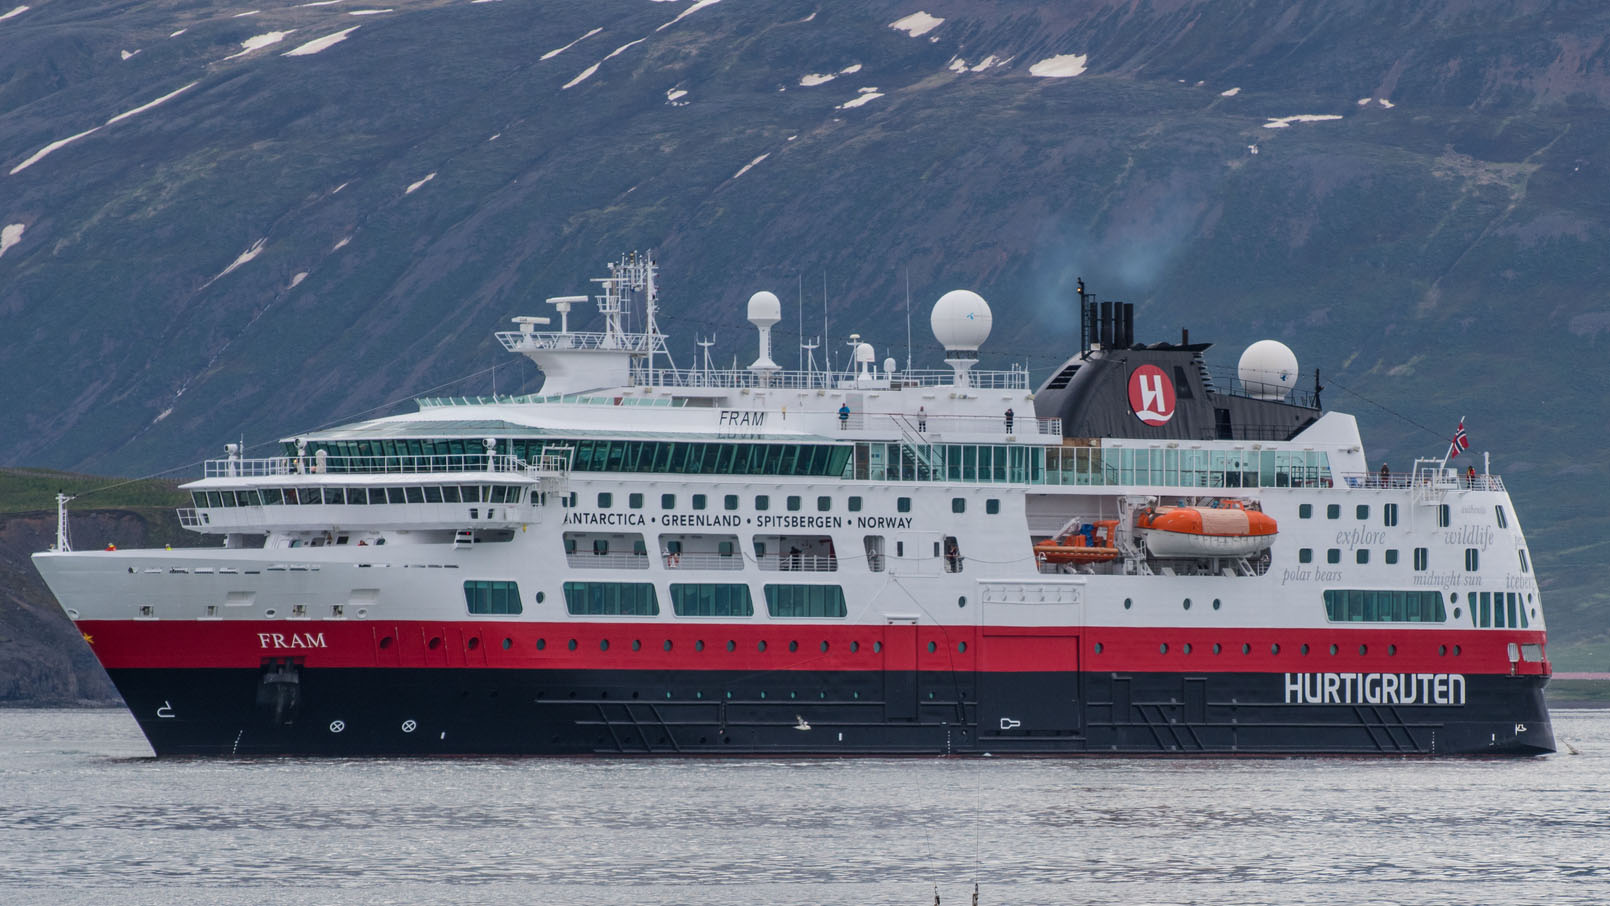 Westlake Legal Group hurtigruten-cruise Cruise line scrambles to reschedule passengers after Russia denies access to Arctic waters at 'last minute' Michael Hollan fox-news/travel/general/cruises fox news fnc/travel fnc article 52eac88d-a7f6-5a75-9bf7-ad132debe552